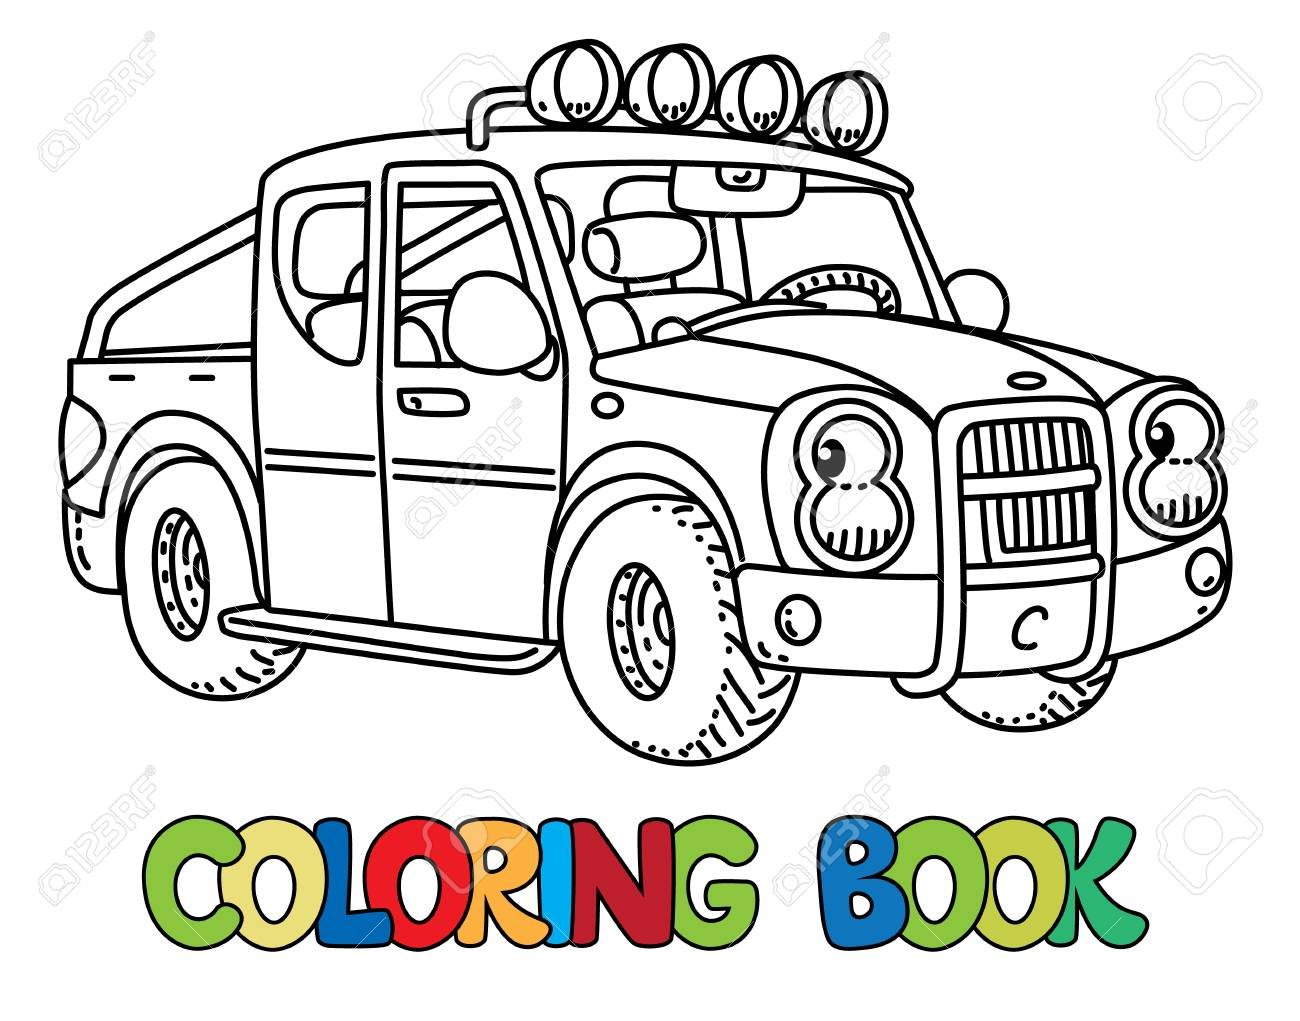 Pickup truck coloring book for kids. Small funny vector cute..